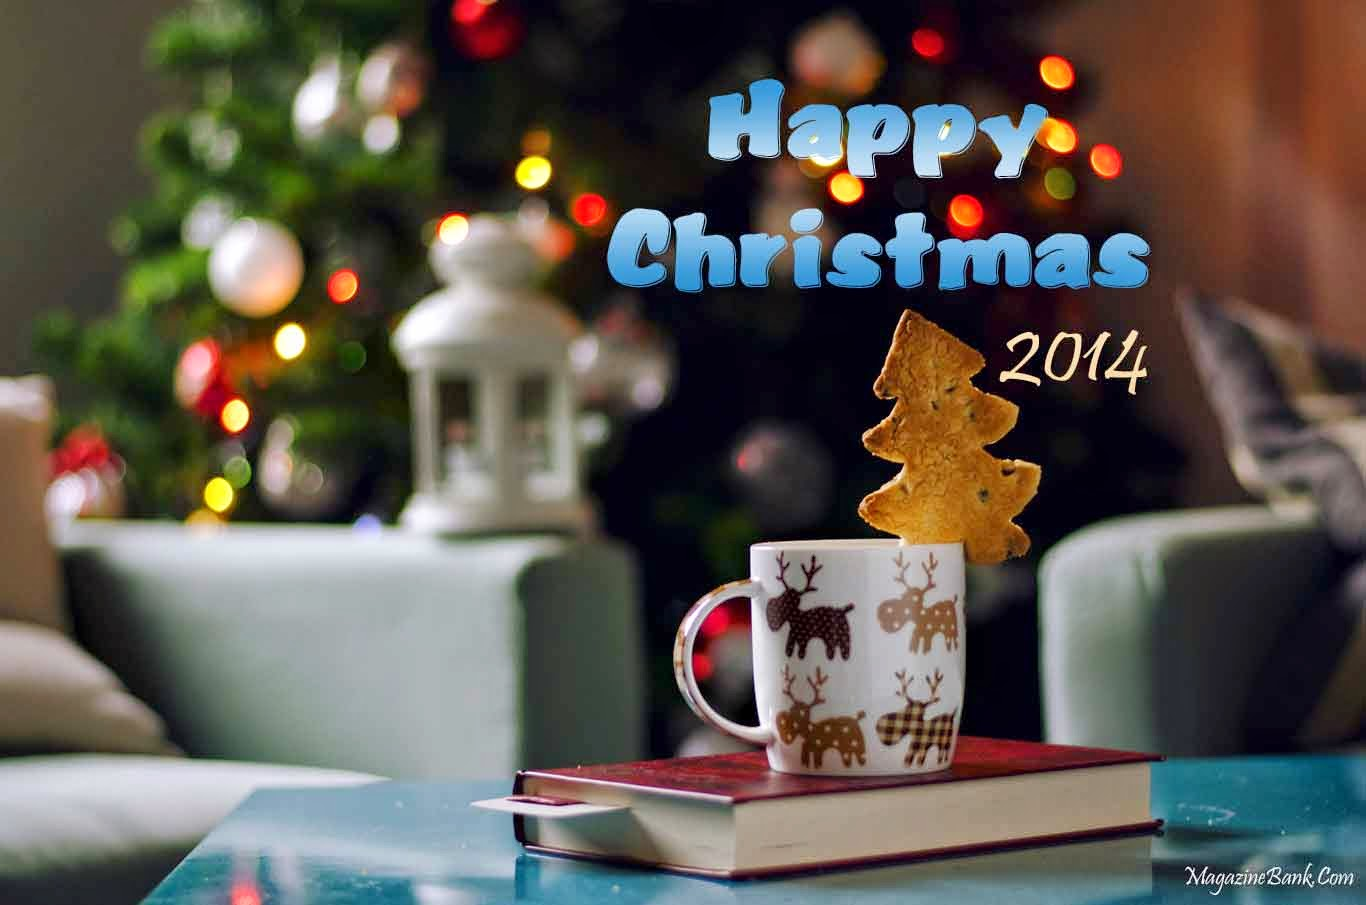 2014 Happy Merry Christmas HD Wallpapers